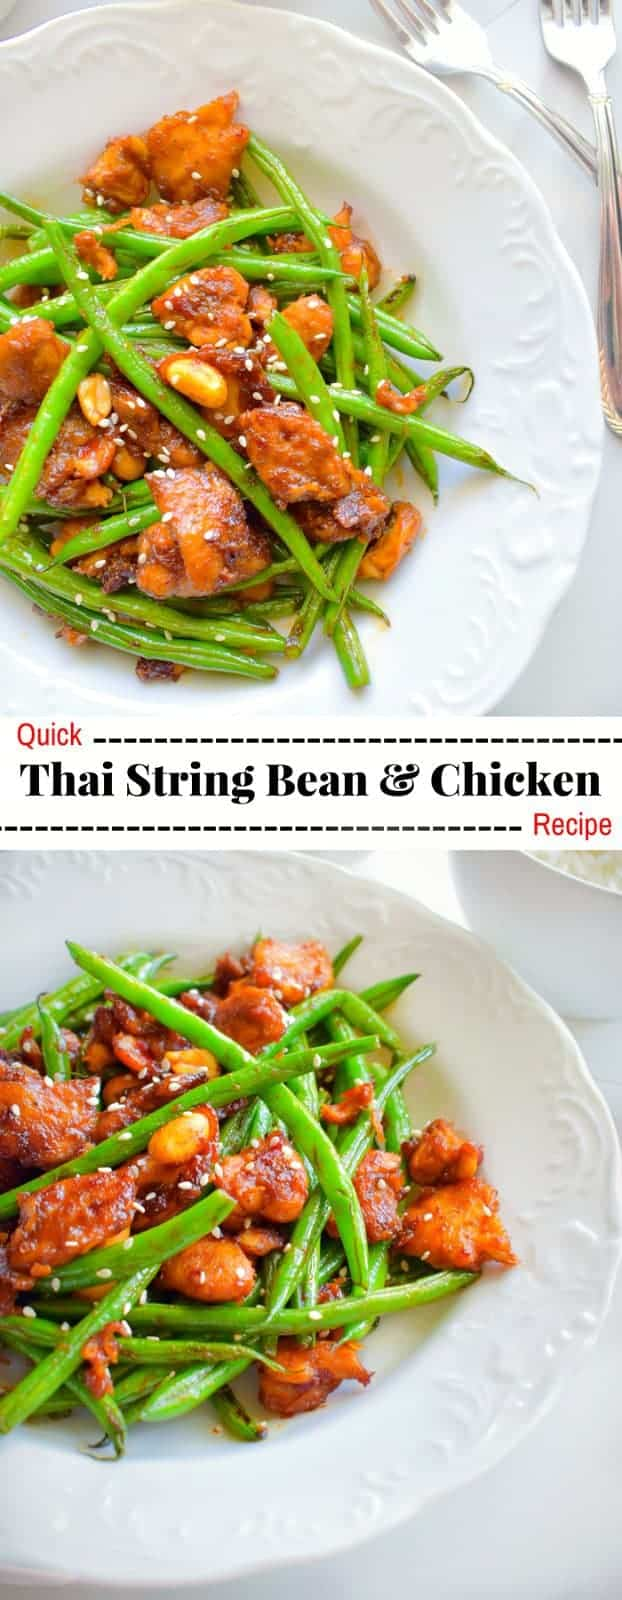 Quick Thai String Bean & Chicken Recipe : #thai #chicken #stringbeans